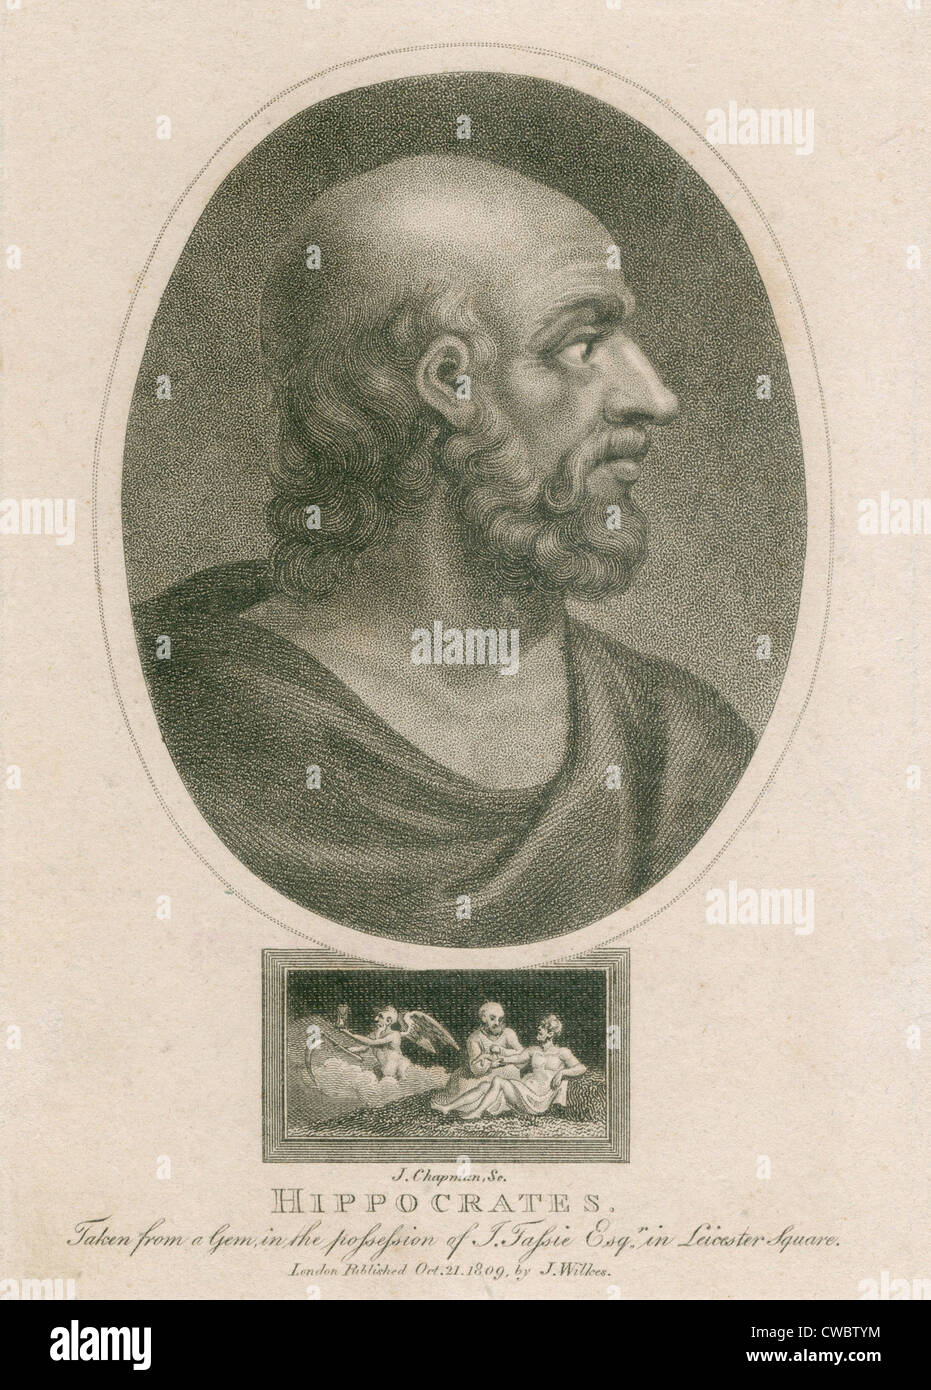 Hippocrates (460-375 BC). Engraving from a ancient gemstone. Ca. 1800 by J. Chapman. - Stock Image